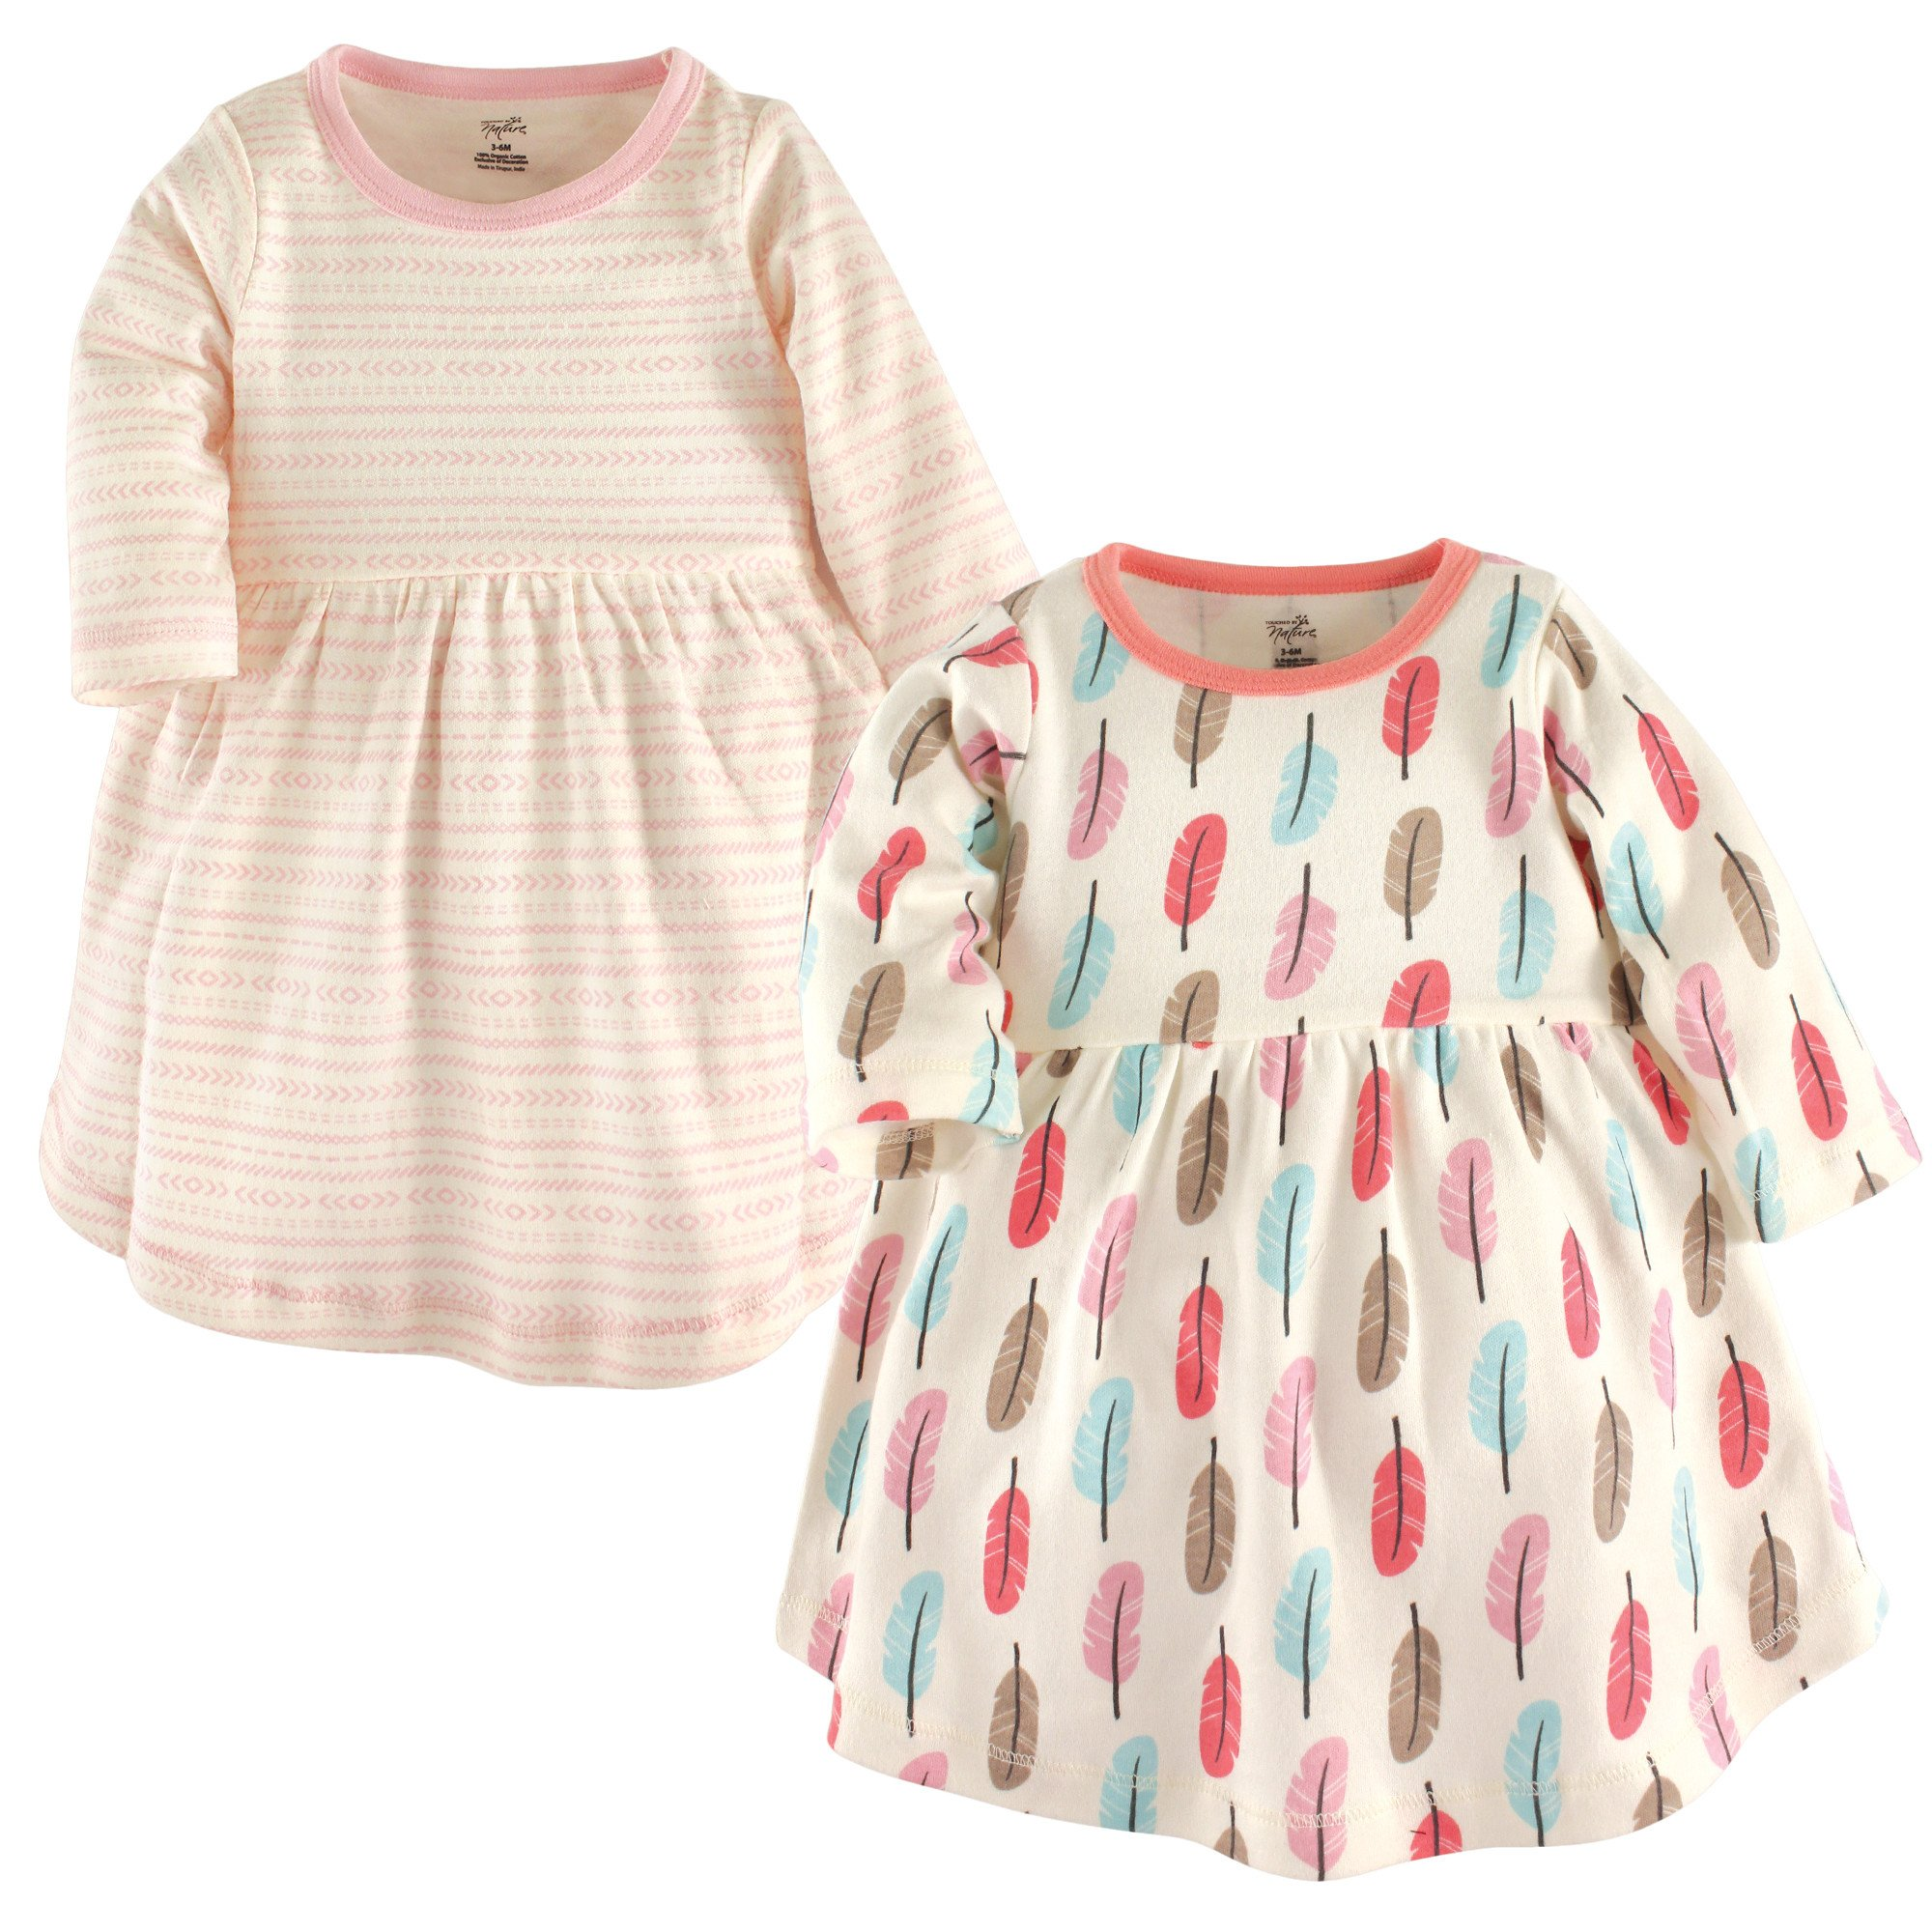 Touched by Nature Baby Girls 2-Pack Organic Cotton Dress, Feathers, 12-18 Months by Touched by Nature